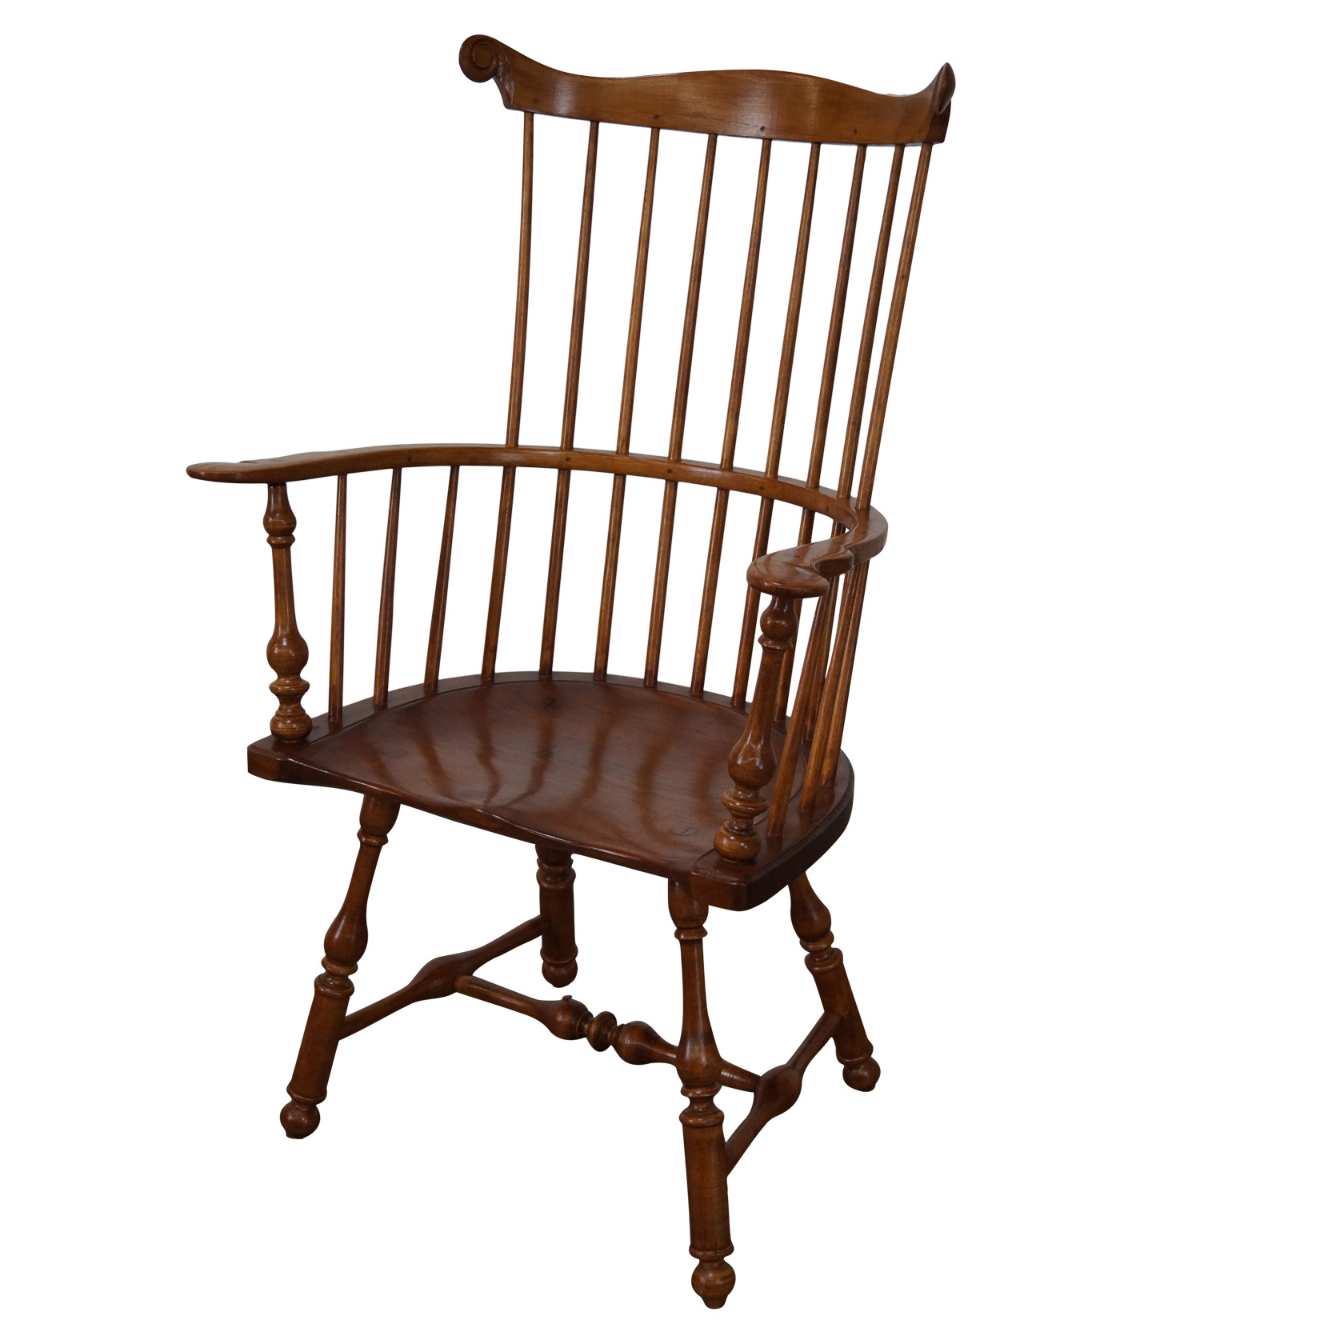 Walter Steely Custom Comb Back Windsor Arm Chair